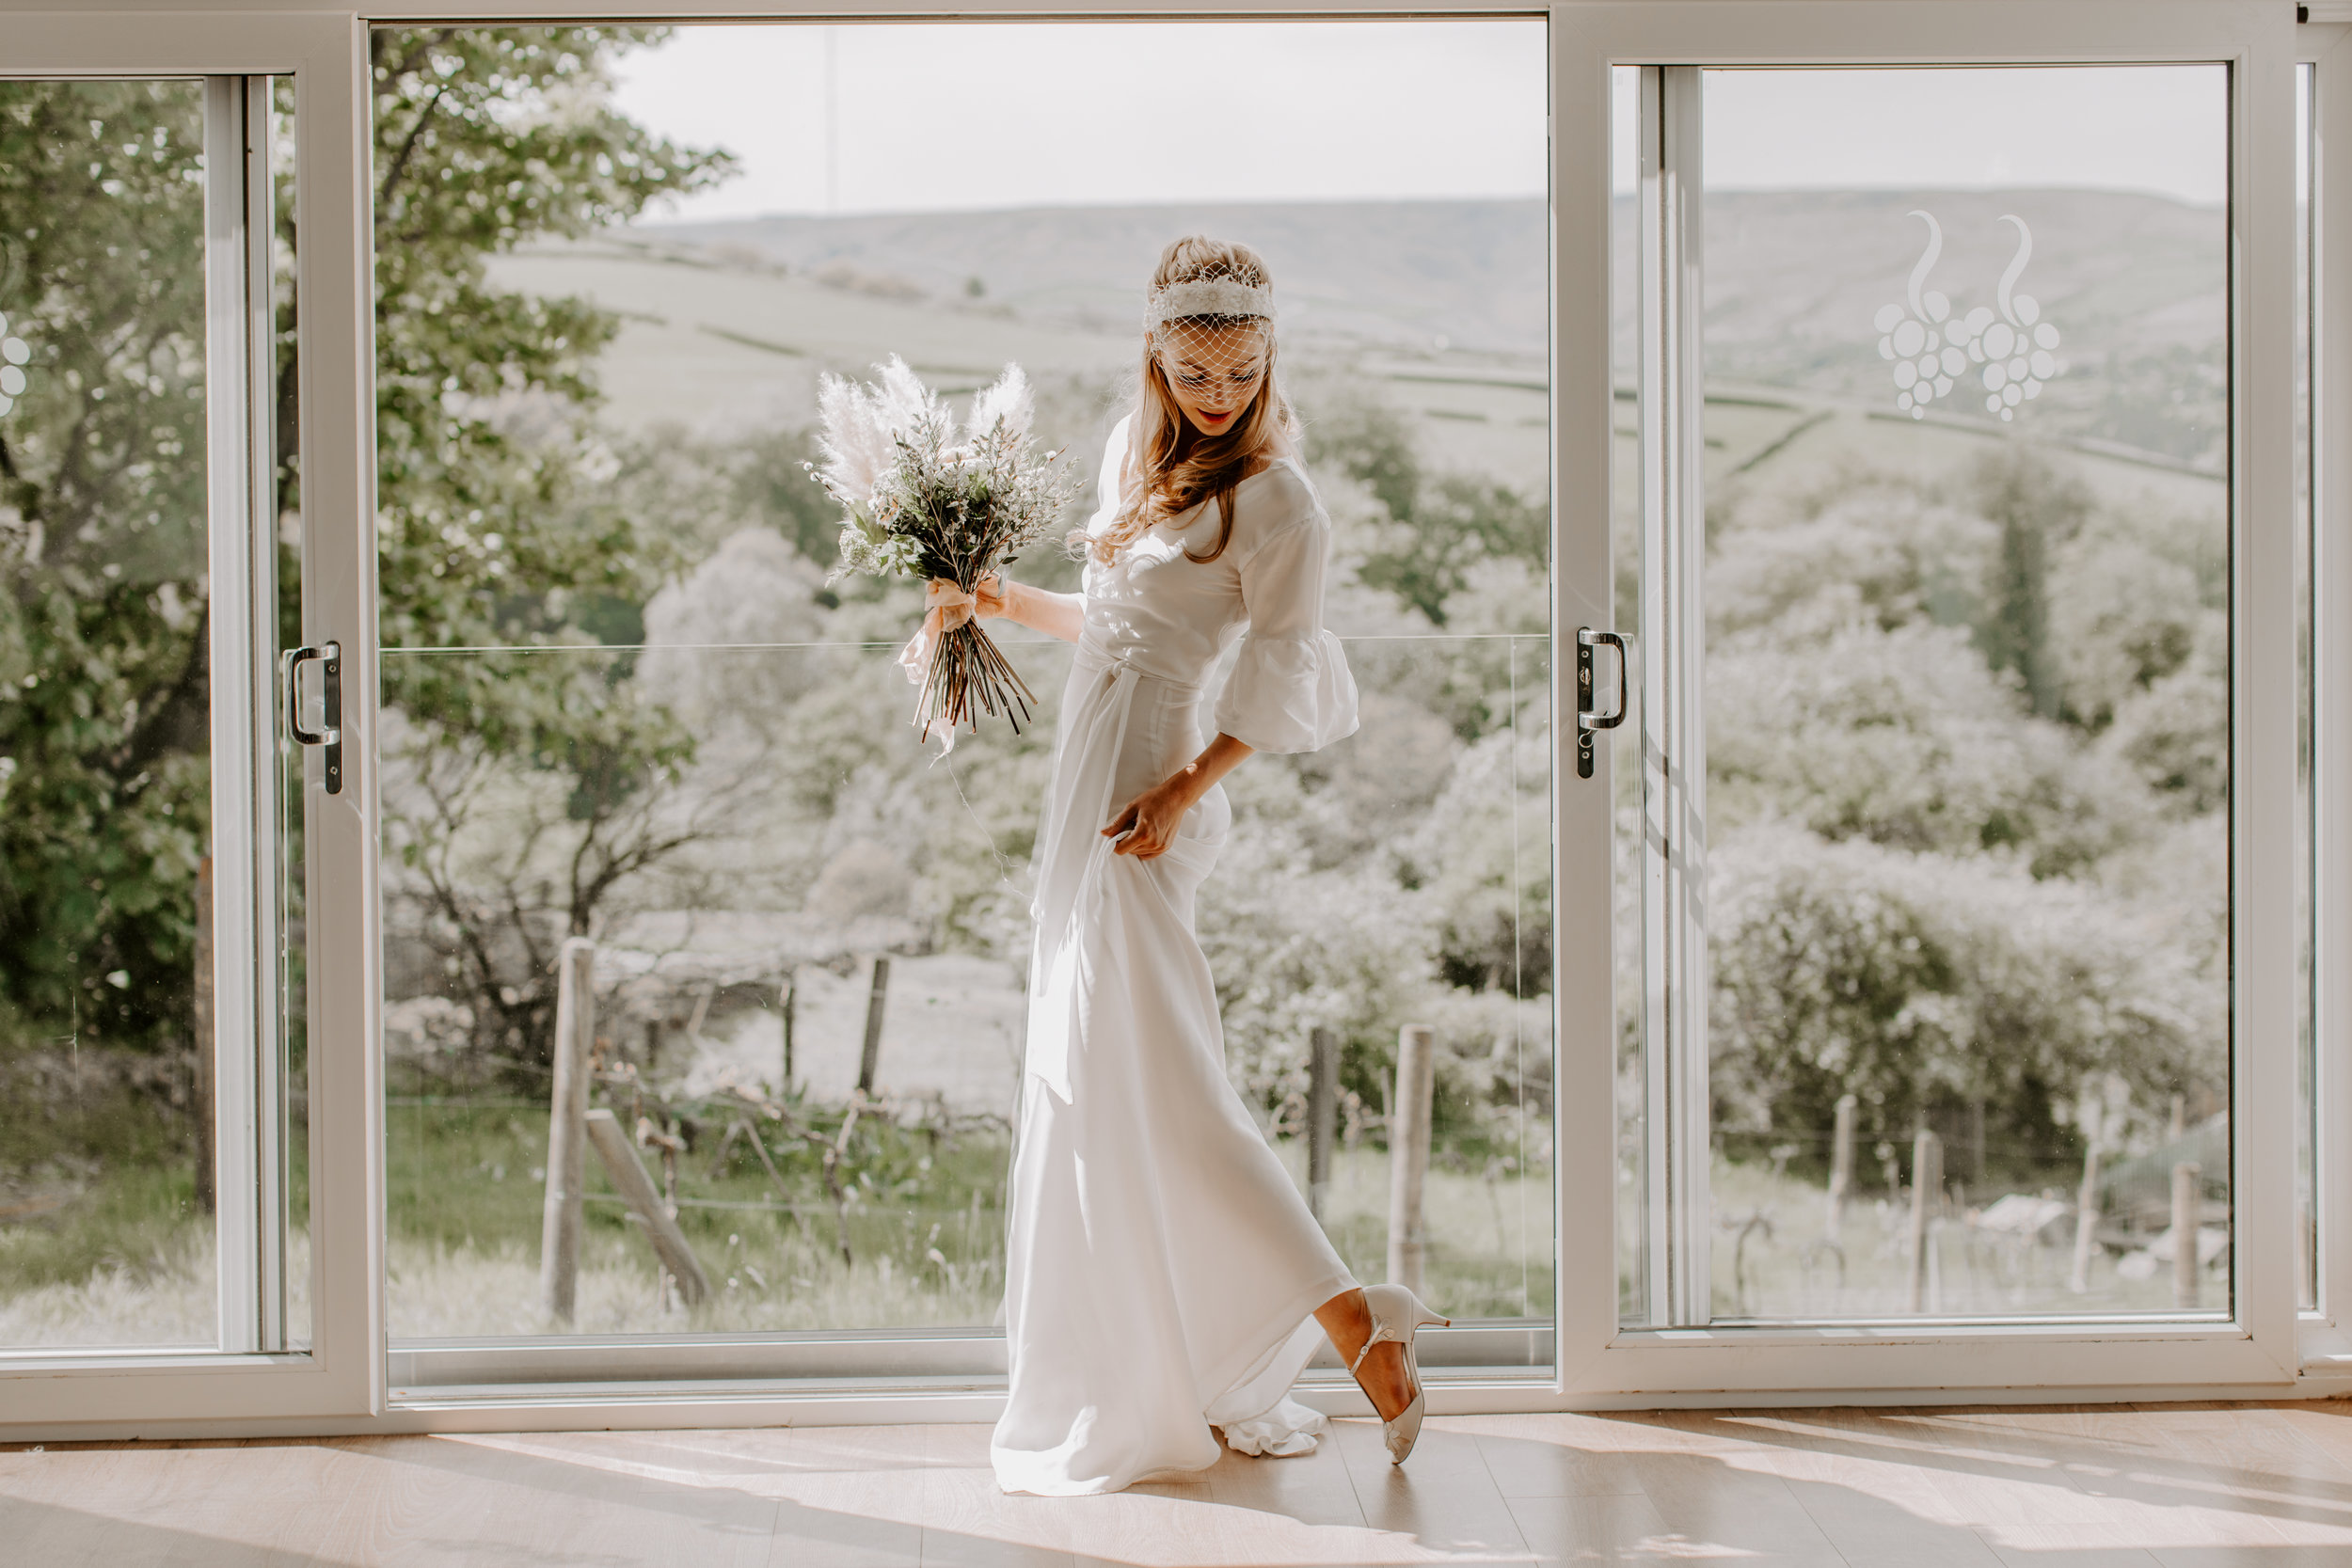 English vineyard styled shoot - A new collaboration of my eco wedding dresses and Silversixpence in her shoe accessories.